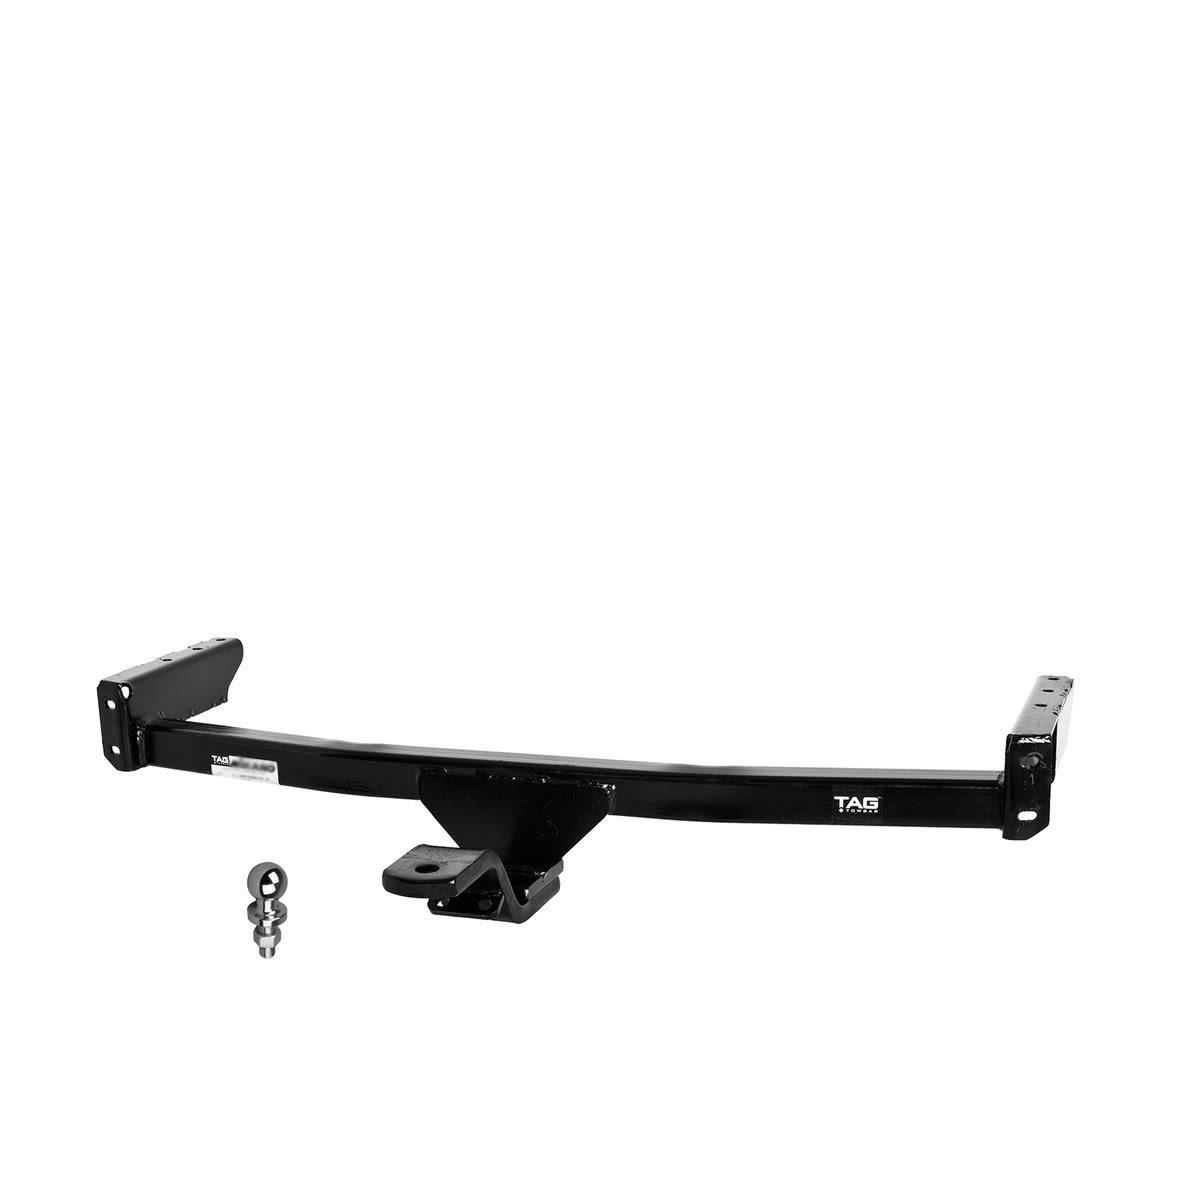 TAG Light Duty Towbar to suit Ford Focus (05/2005 - 07/2011) - No Wiring Harness